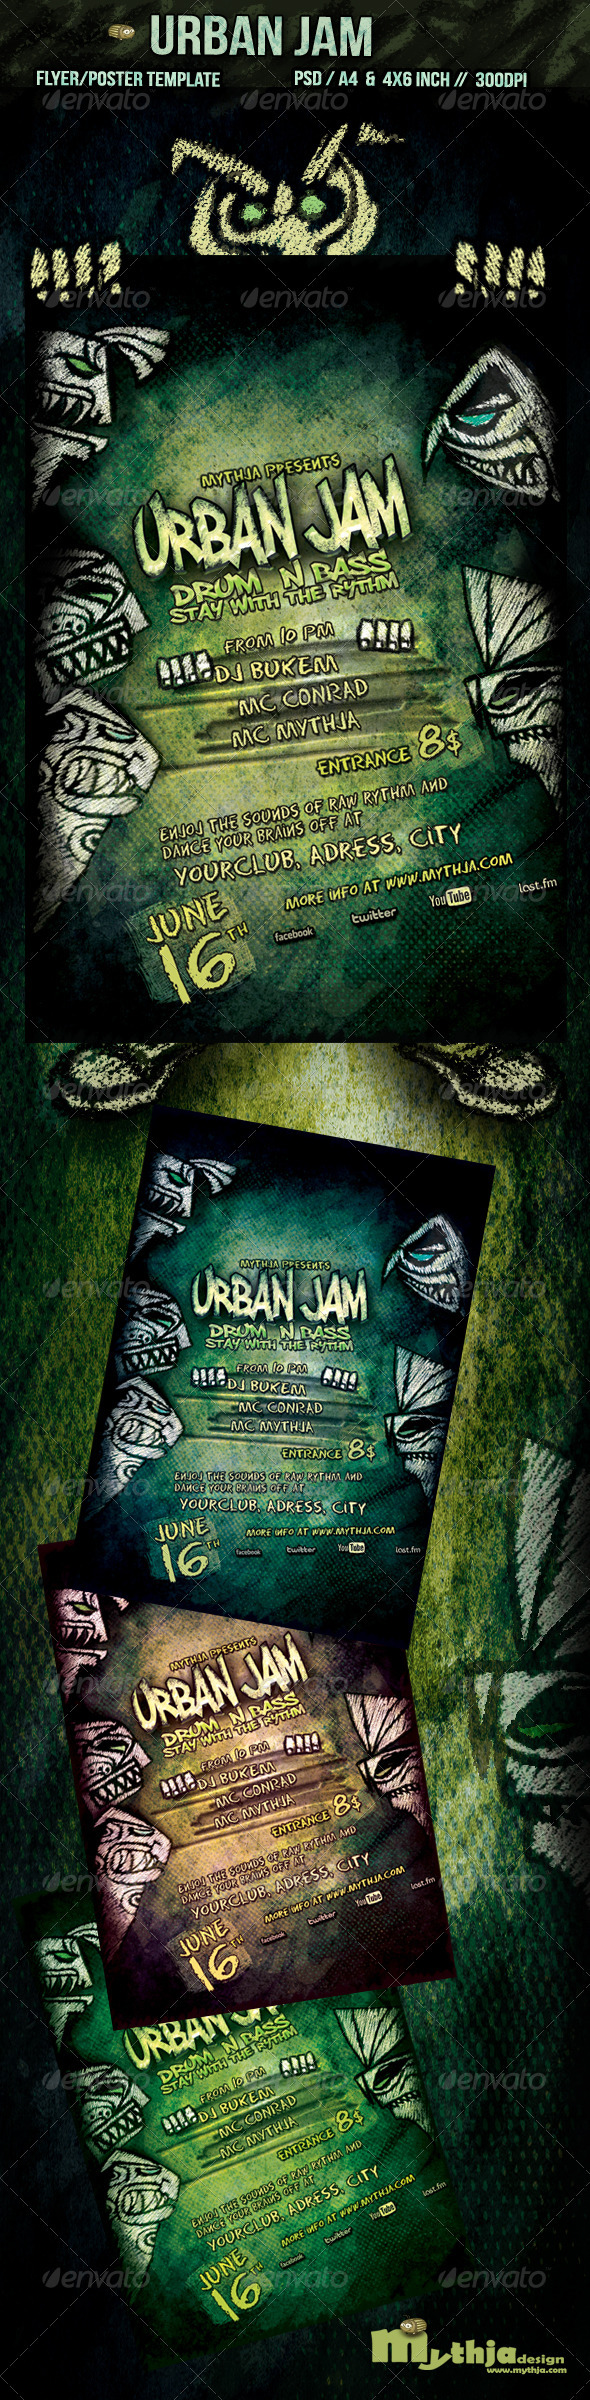 Urban Jam Flyer/Poster Template - Events Flyers